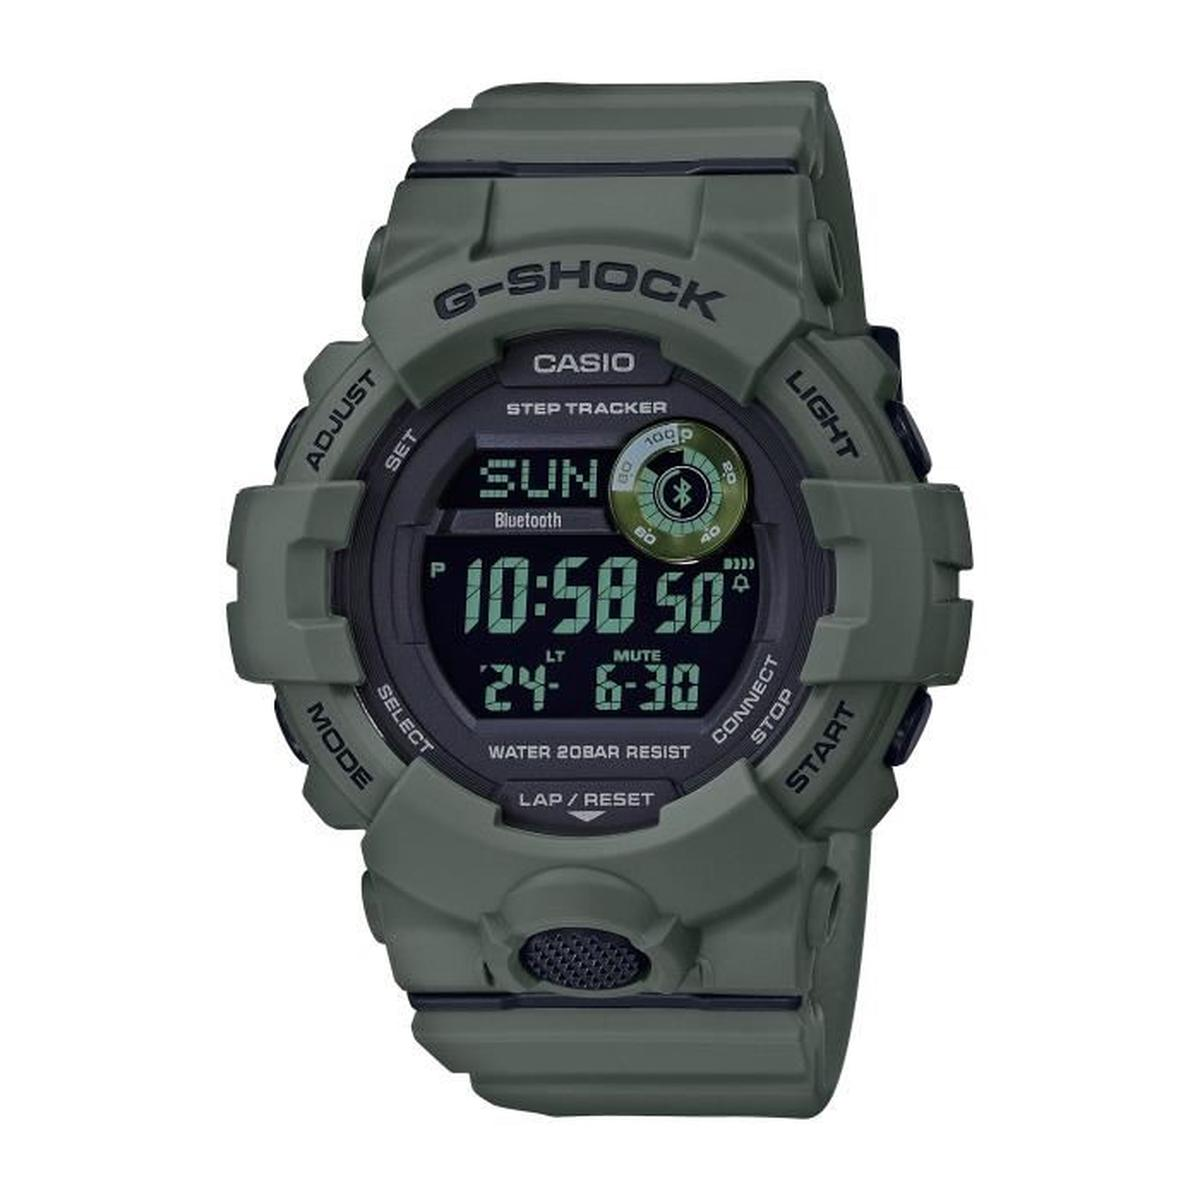 CASIO RUBBER WATCH MILITARY GREEN DIGITAL GBD-800UC-3ER